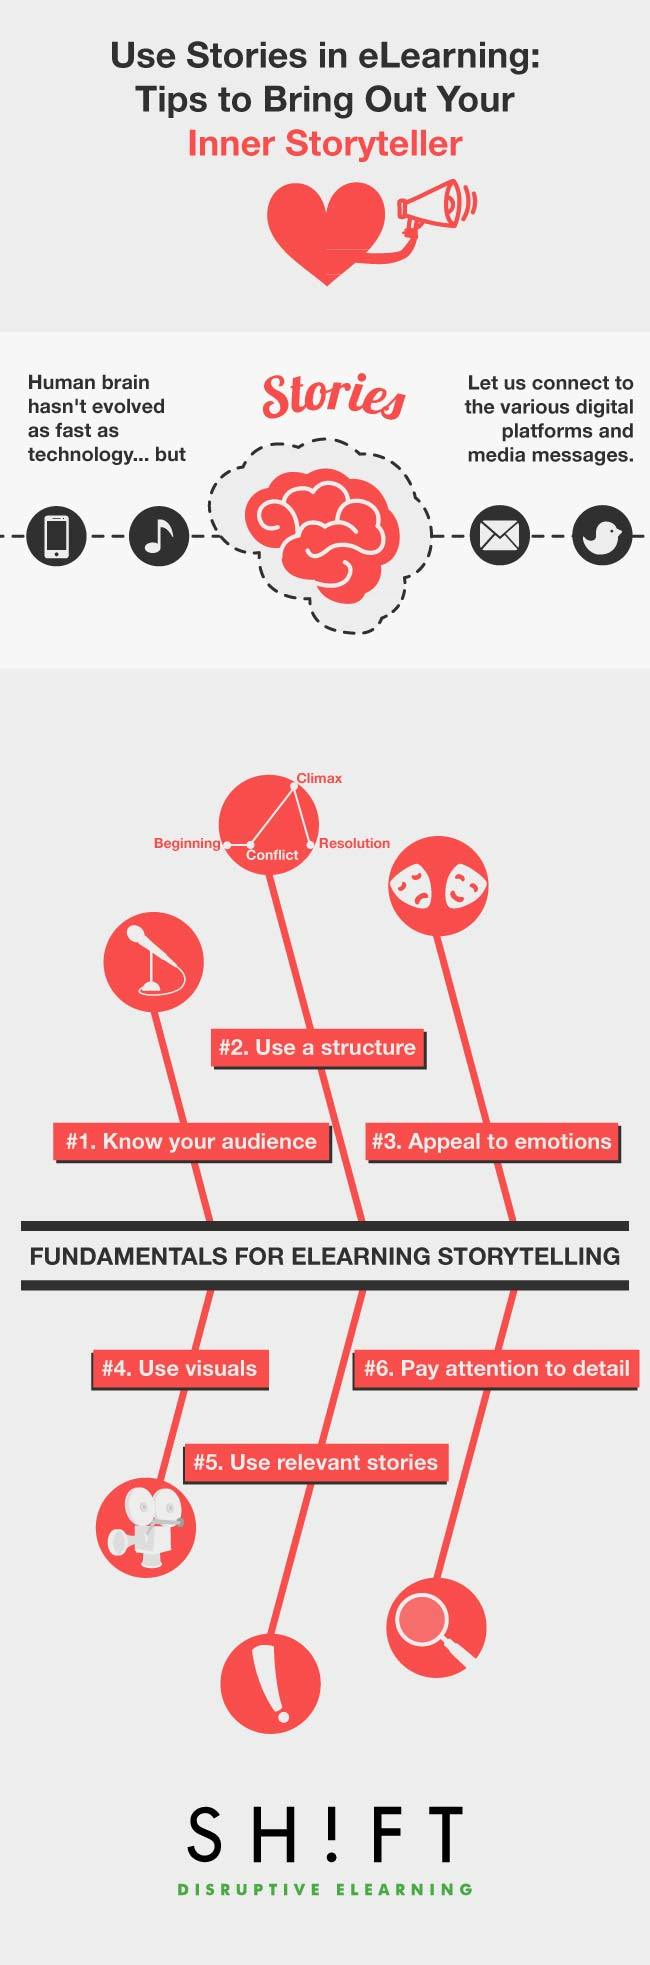 Use Stories in eLearning: 6 Tips to Bring Out Your Inner Storyteller thumbnail